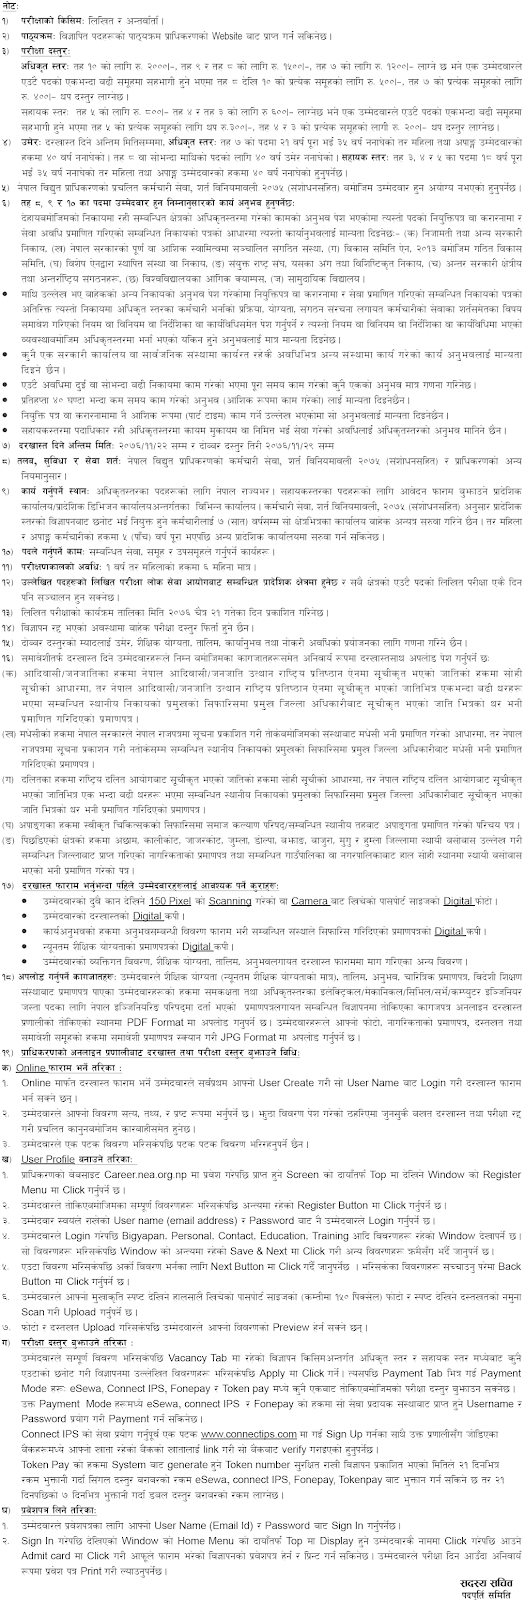 Nepal Electricity Authority Vacancy